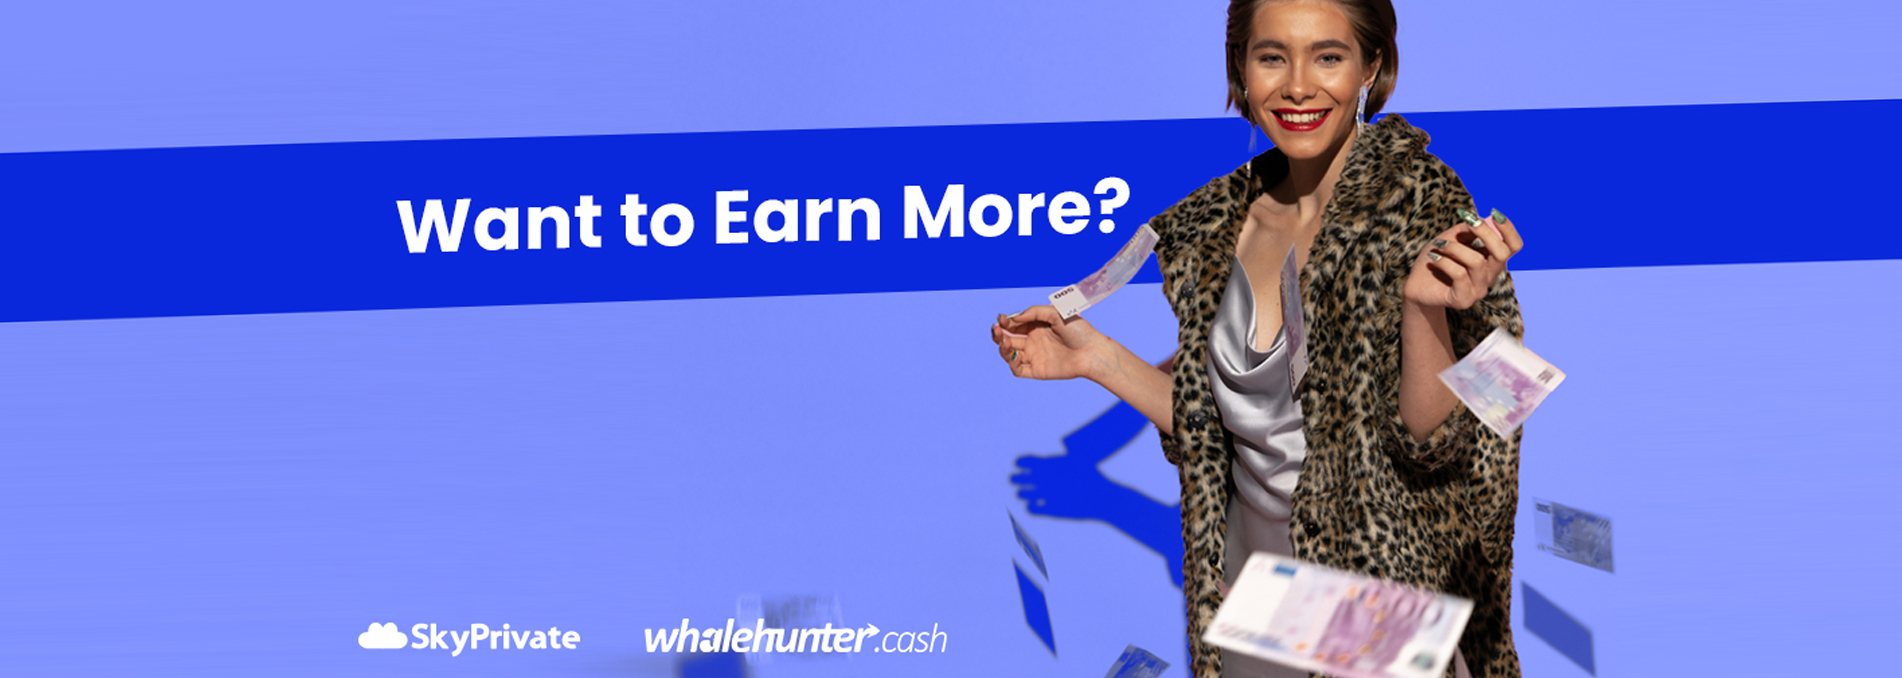 From Model to WhaleHunter.cash Affiliate Model: Earn More with Less Work